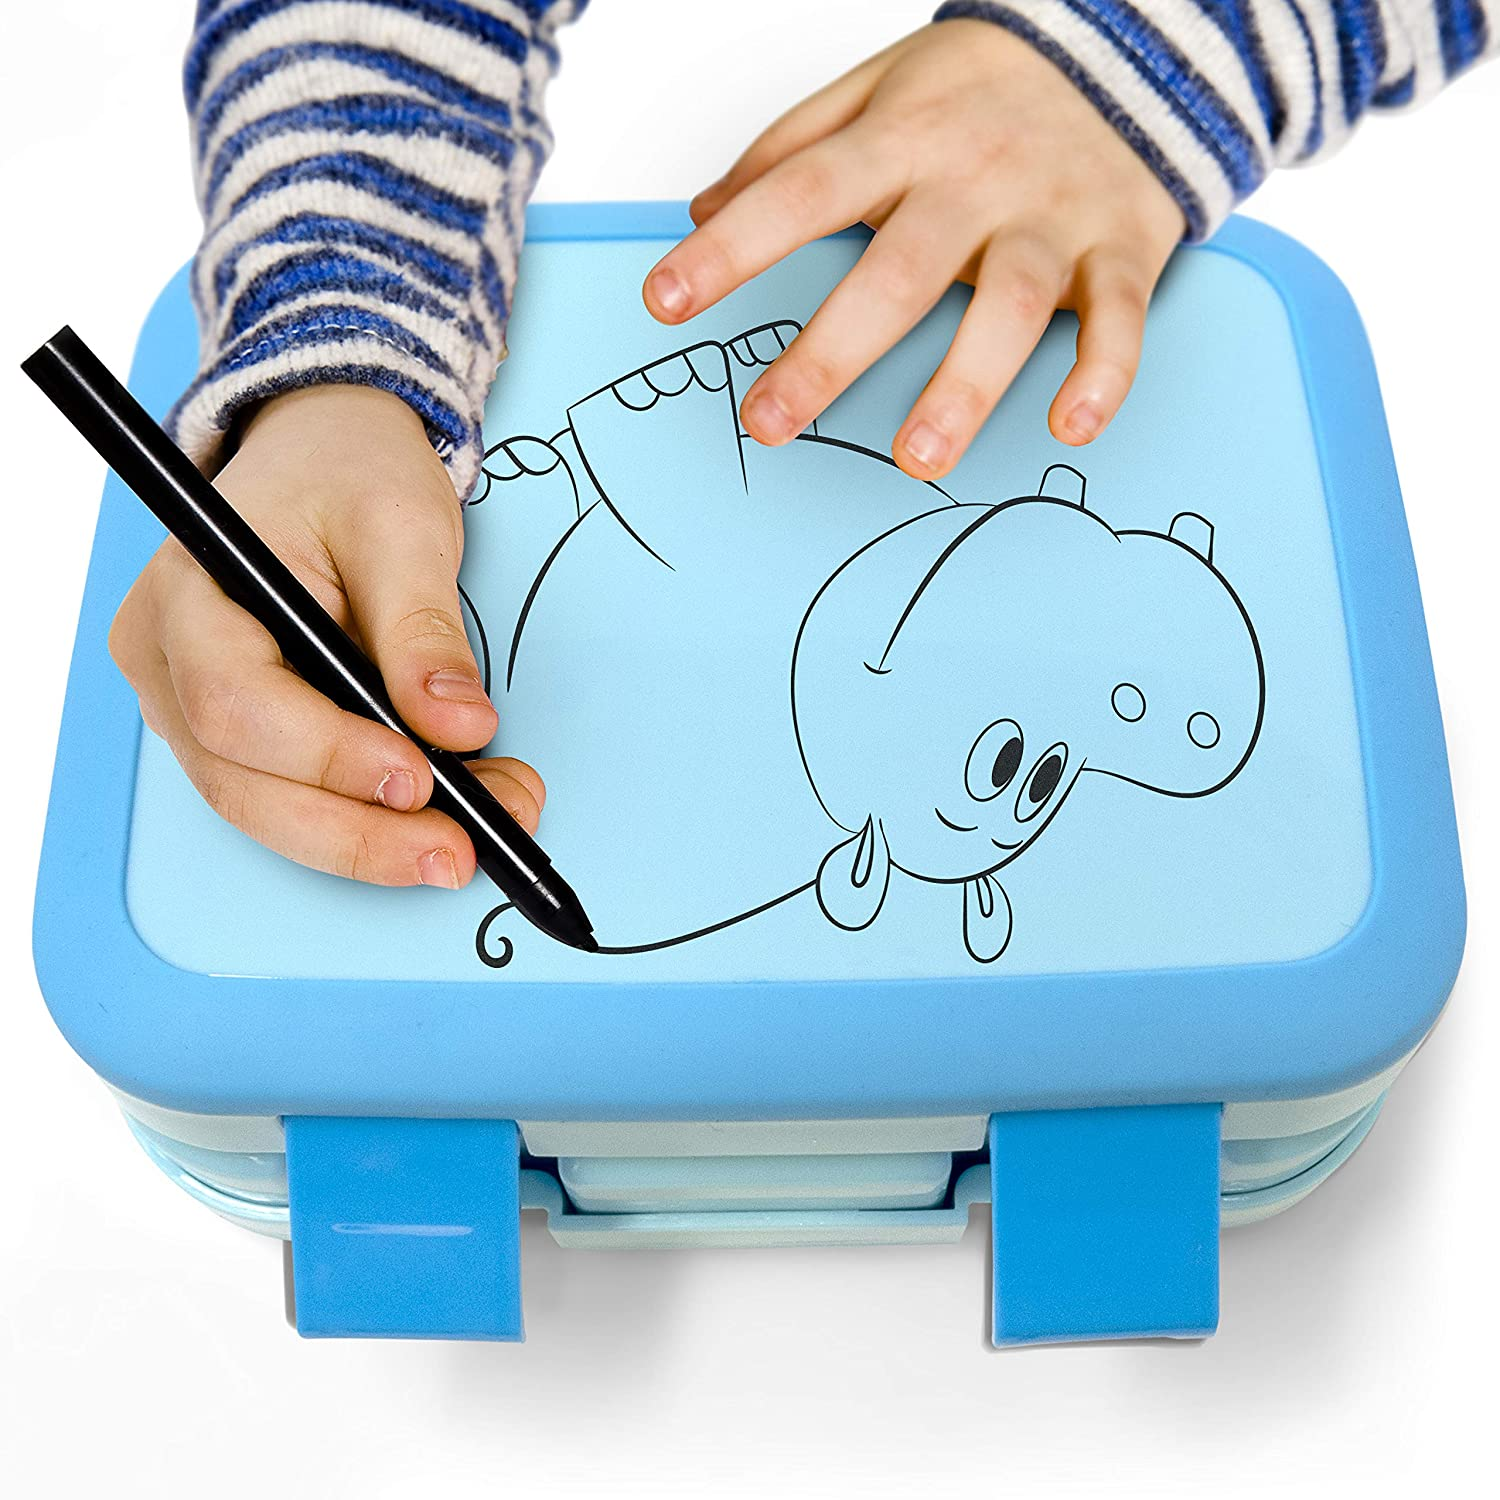 Top 10 Best Kids Lunch Boxes (2020 Reviews & Buying Guide) 4